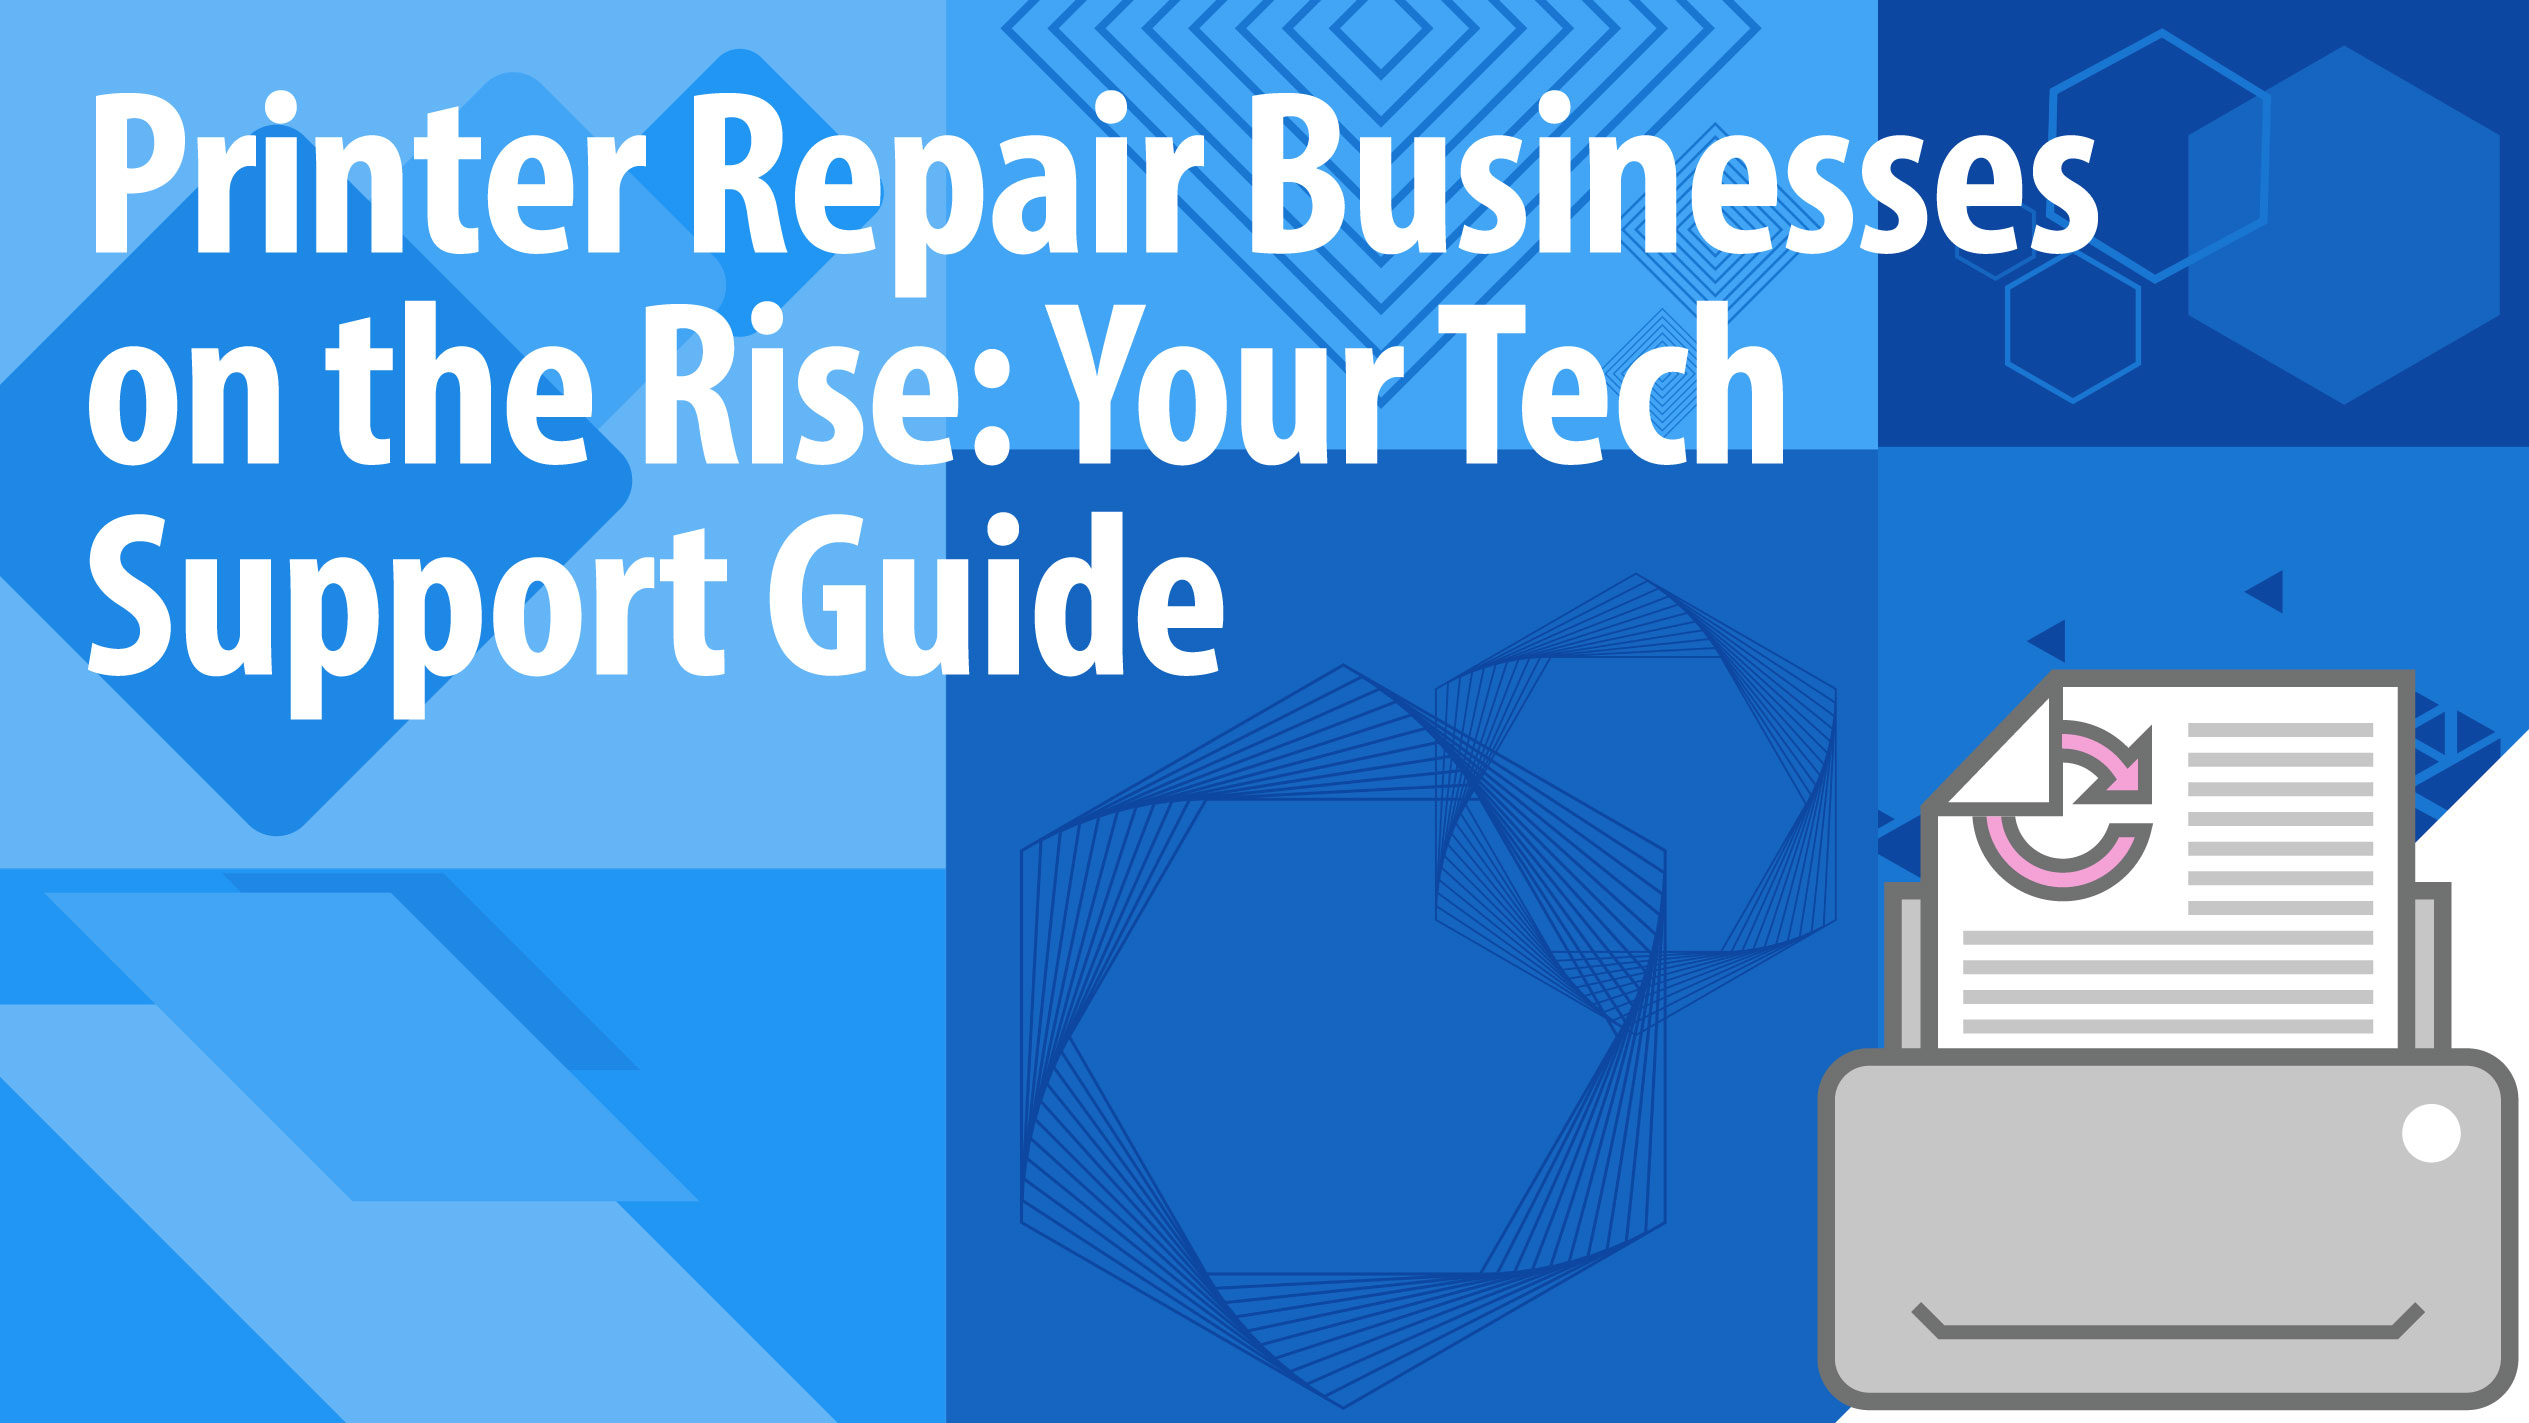 Printer Repair Businesses on the Rise: Your Tech Support Guide